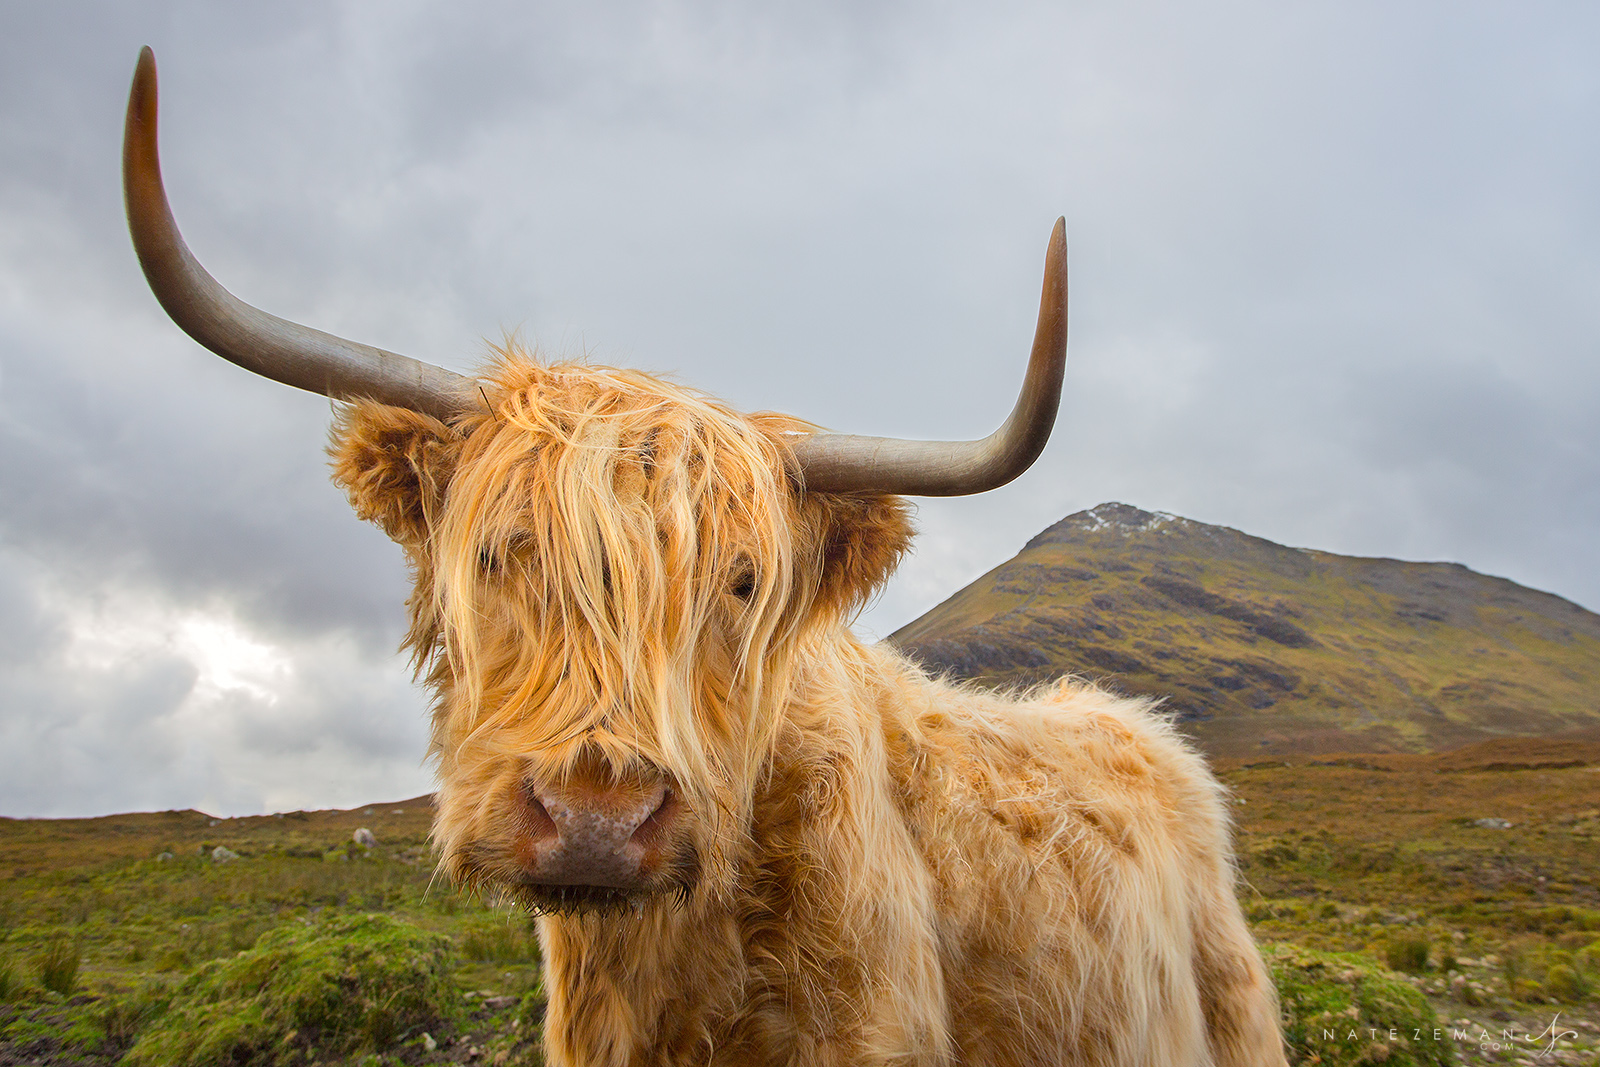 scottish, scotland, isle of skye, skye, highland cattle, highland cow, coo, fur, scottish highlands, , photo